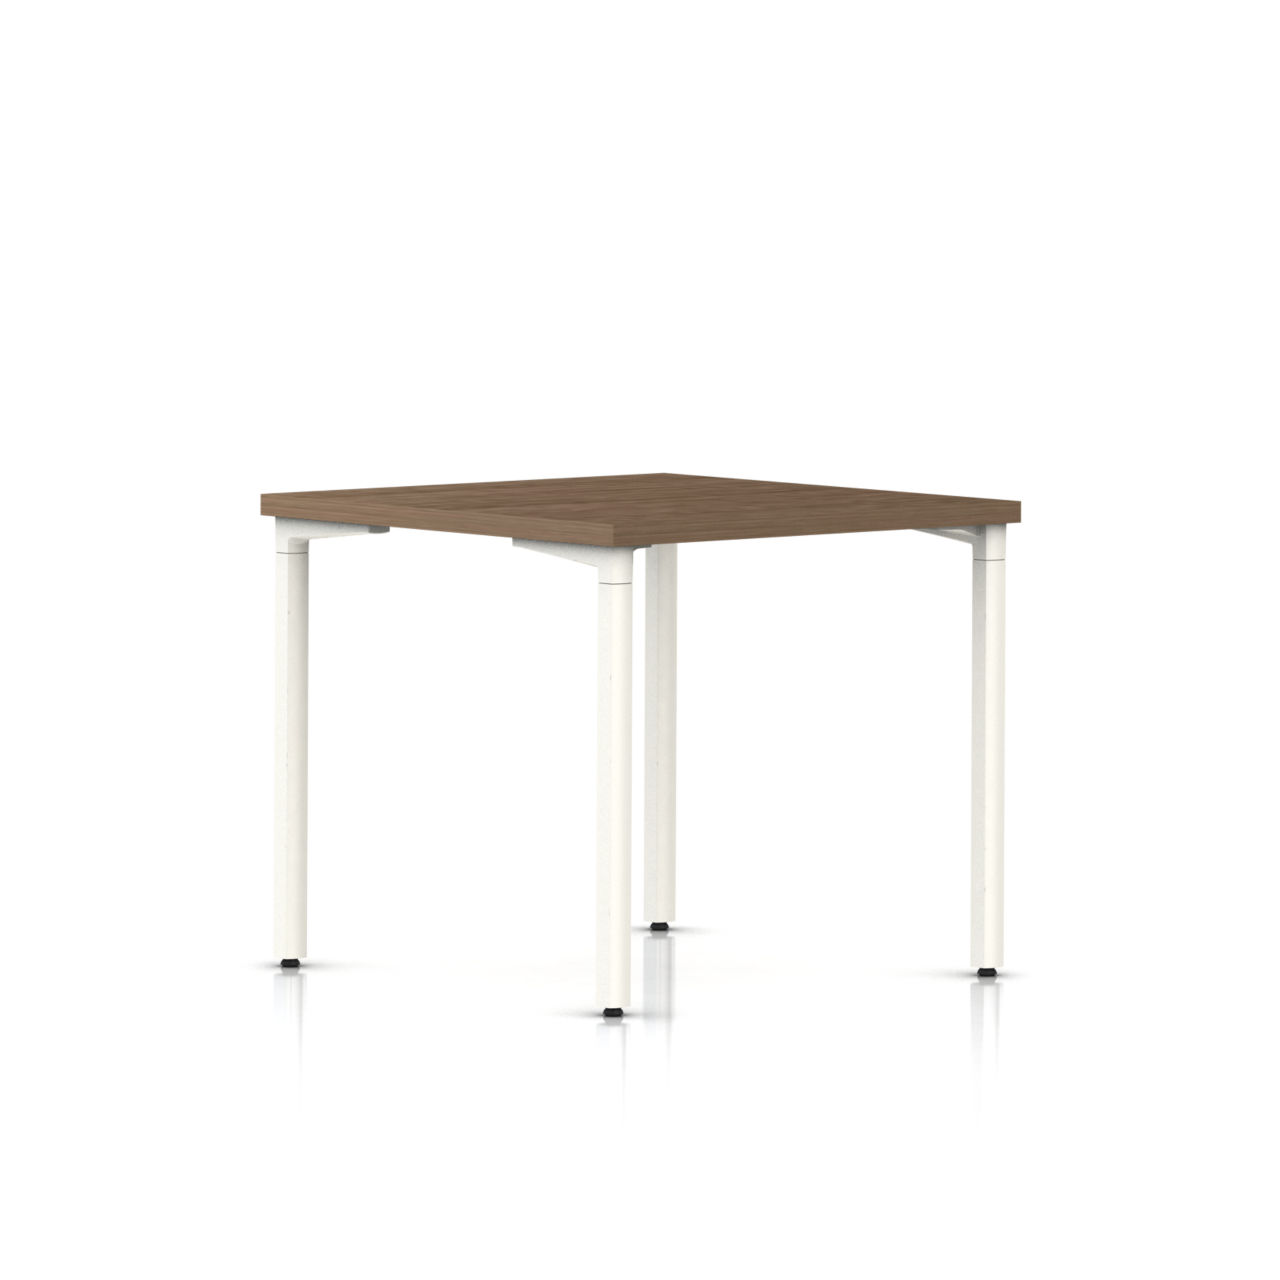 Everywhere Square Table in Walnut on Ash 30 IN x 30 IN by Herman Miller